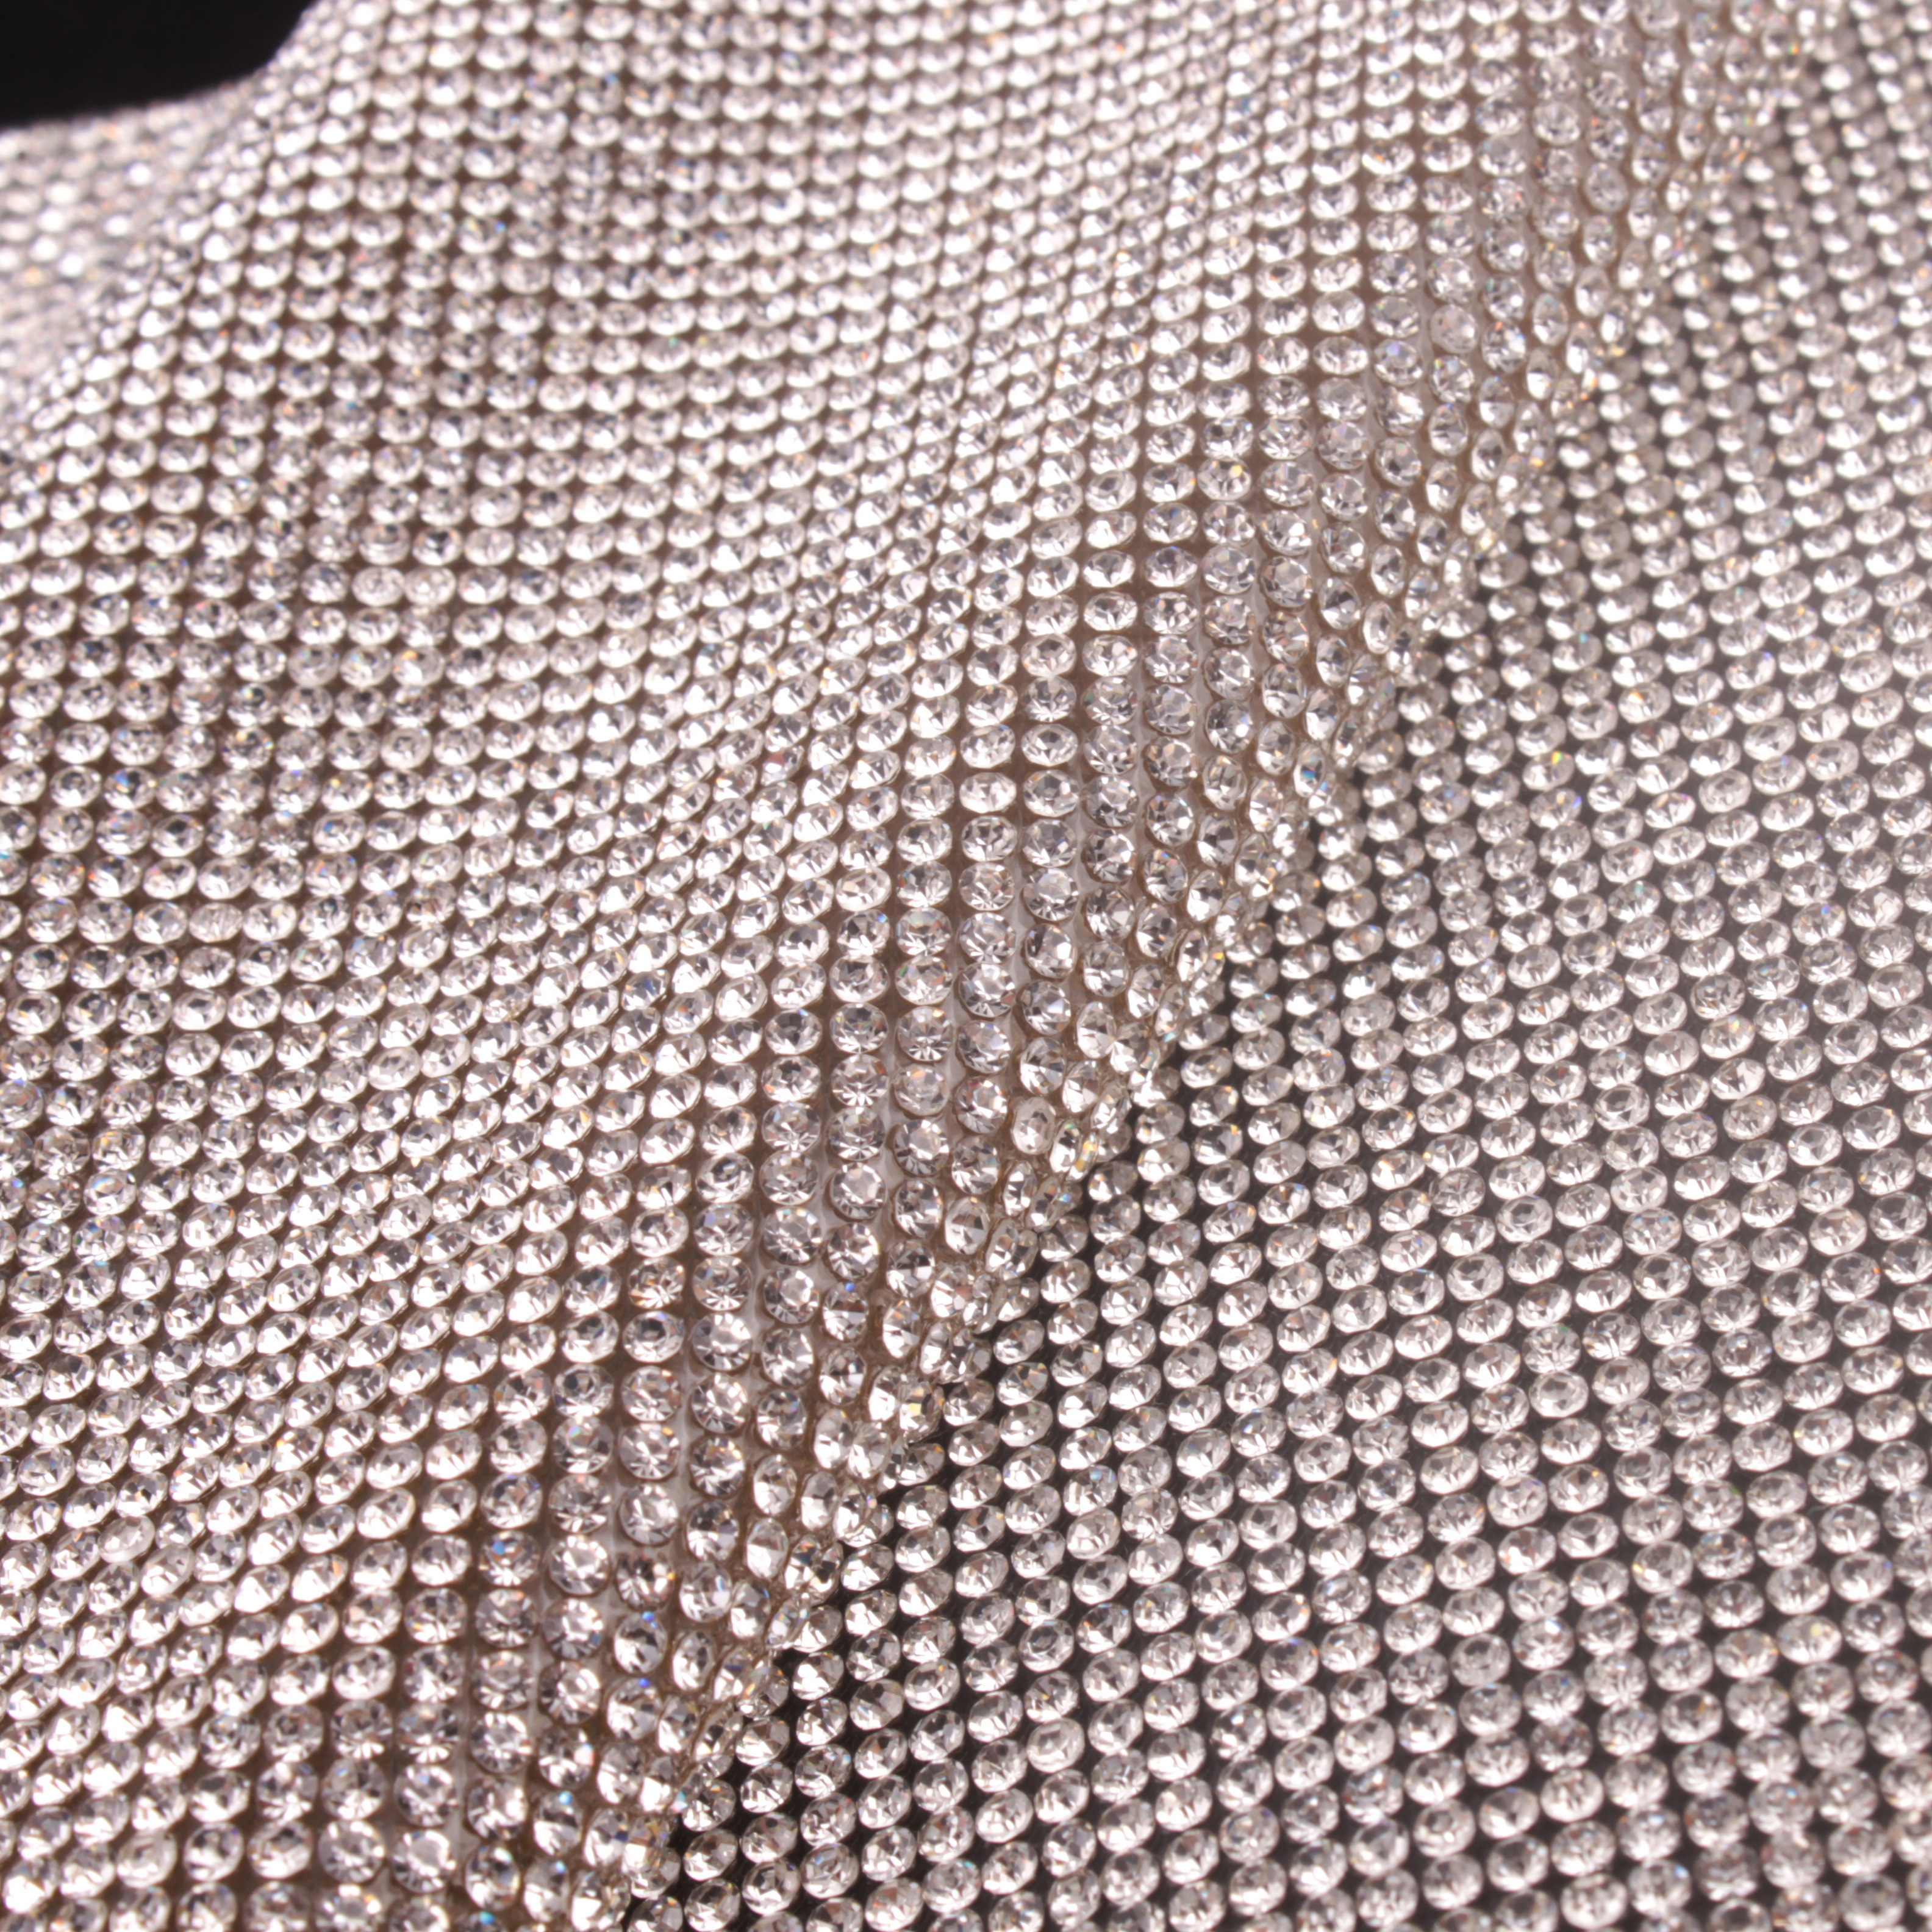 58f5ee8fca 2mm Clear Crystal Adhesive Rhinestone Sheets For Fabric